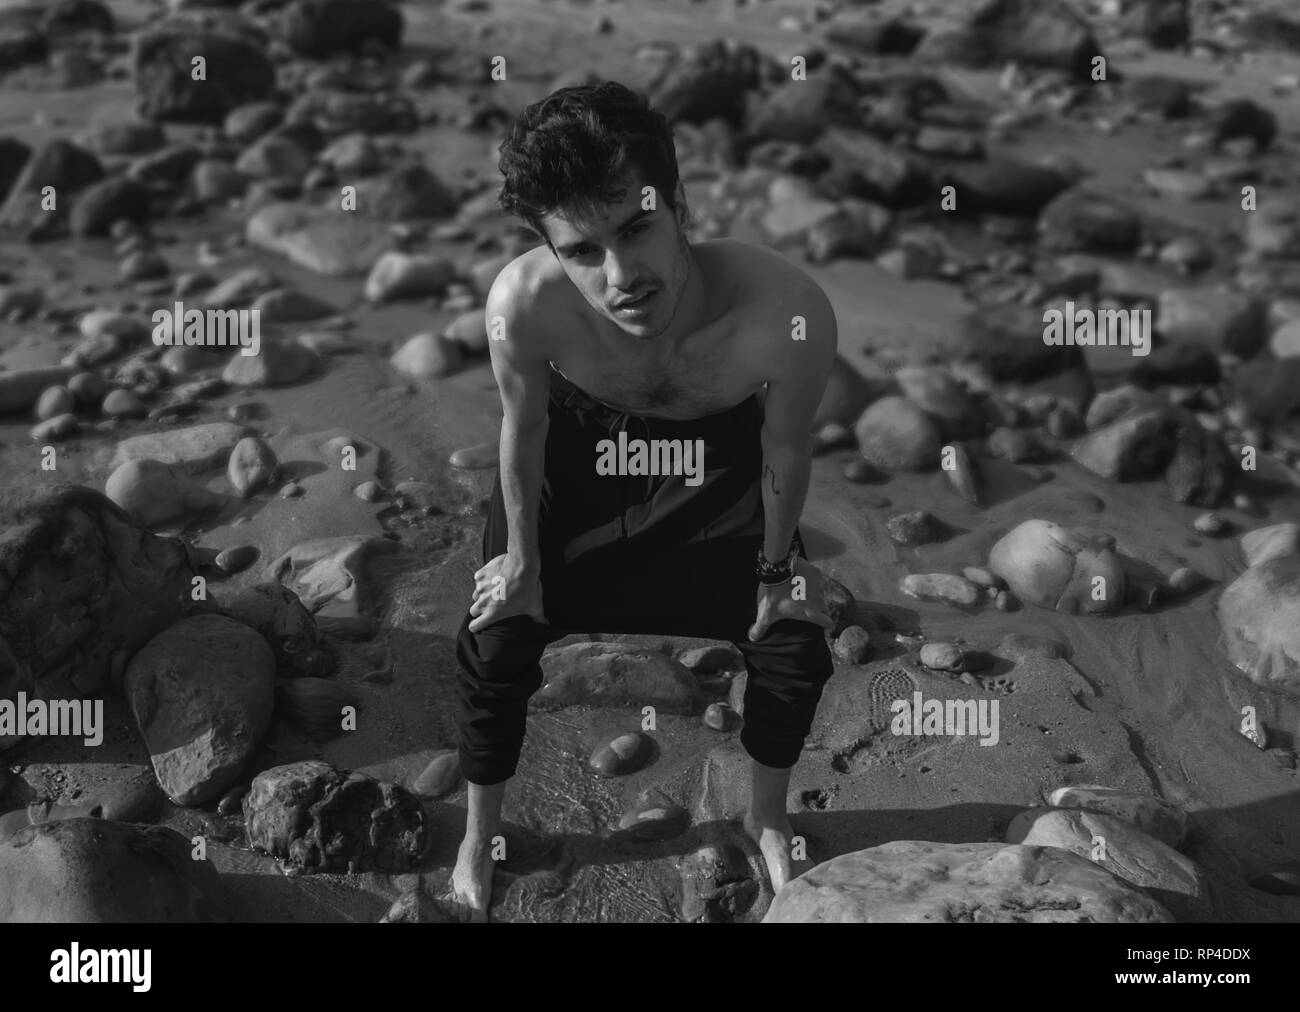 Black and white portrait of a young man in yoga pants and shirtless in the beach. looking at the camera - Stock Image